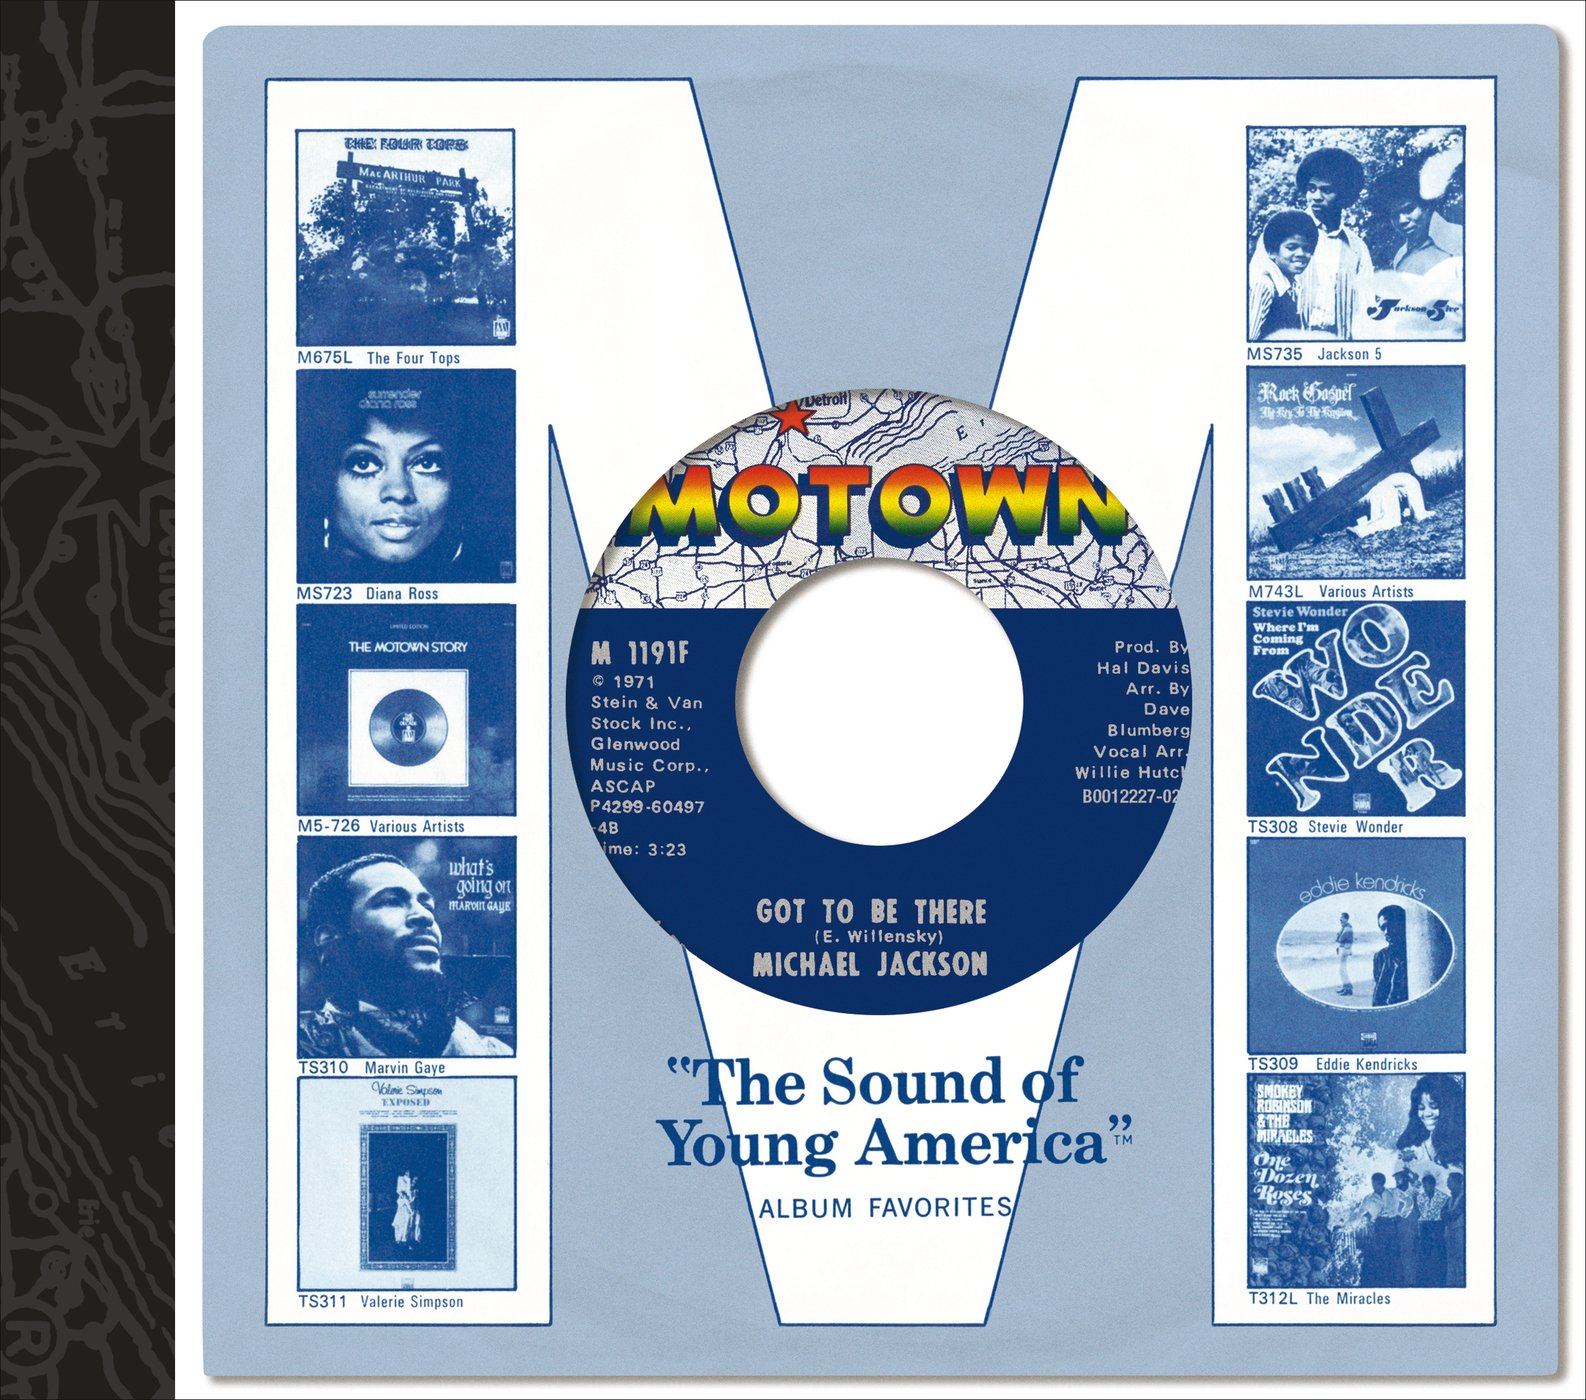 The Complete Motown Singles - Volume 11B: 1971 [5 CD] by Hip-O Select